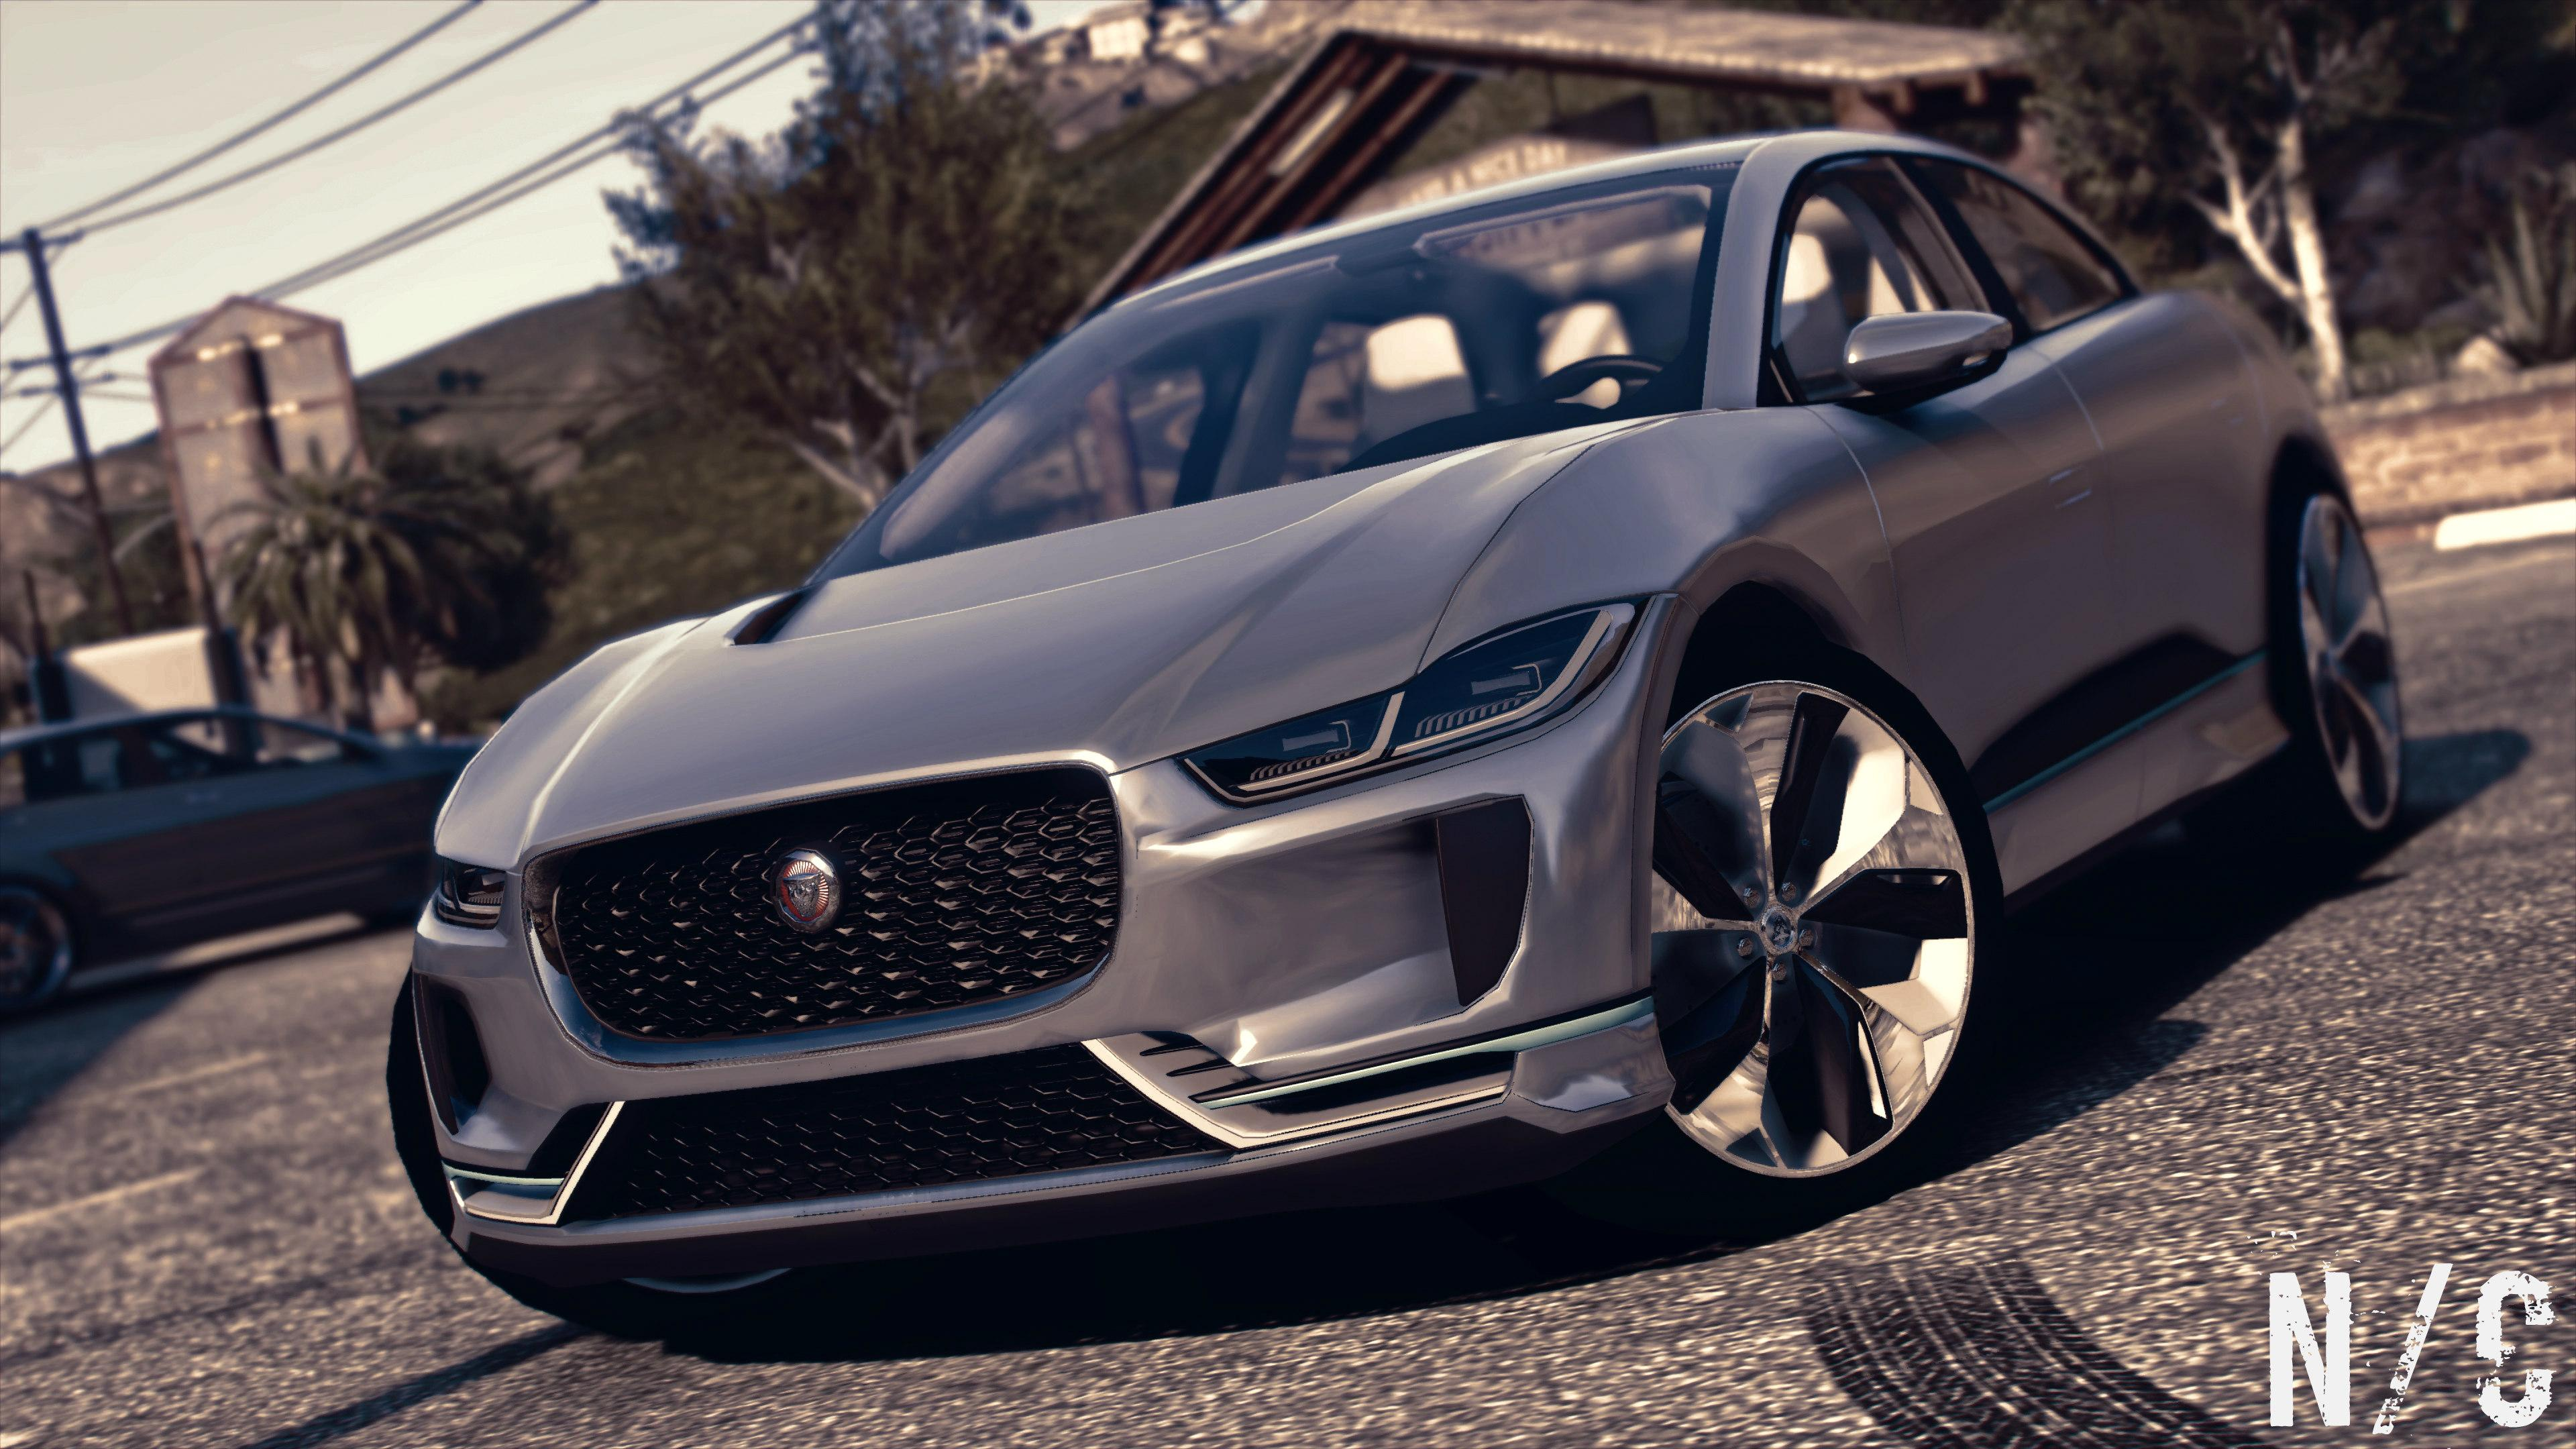 Jaguar I-Pace 2016 [Add-On] - GTA5-Mods.com